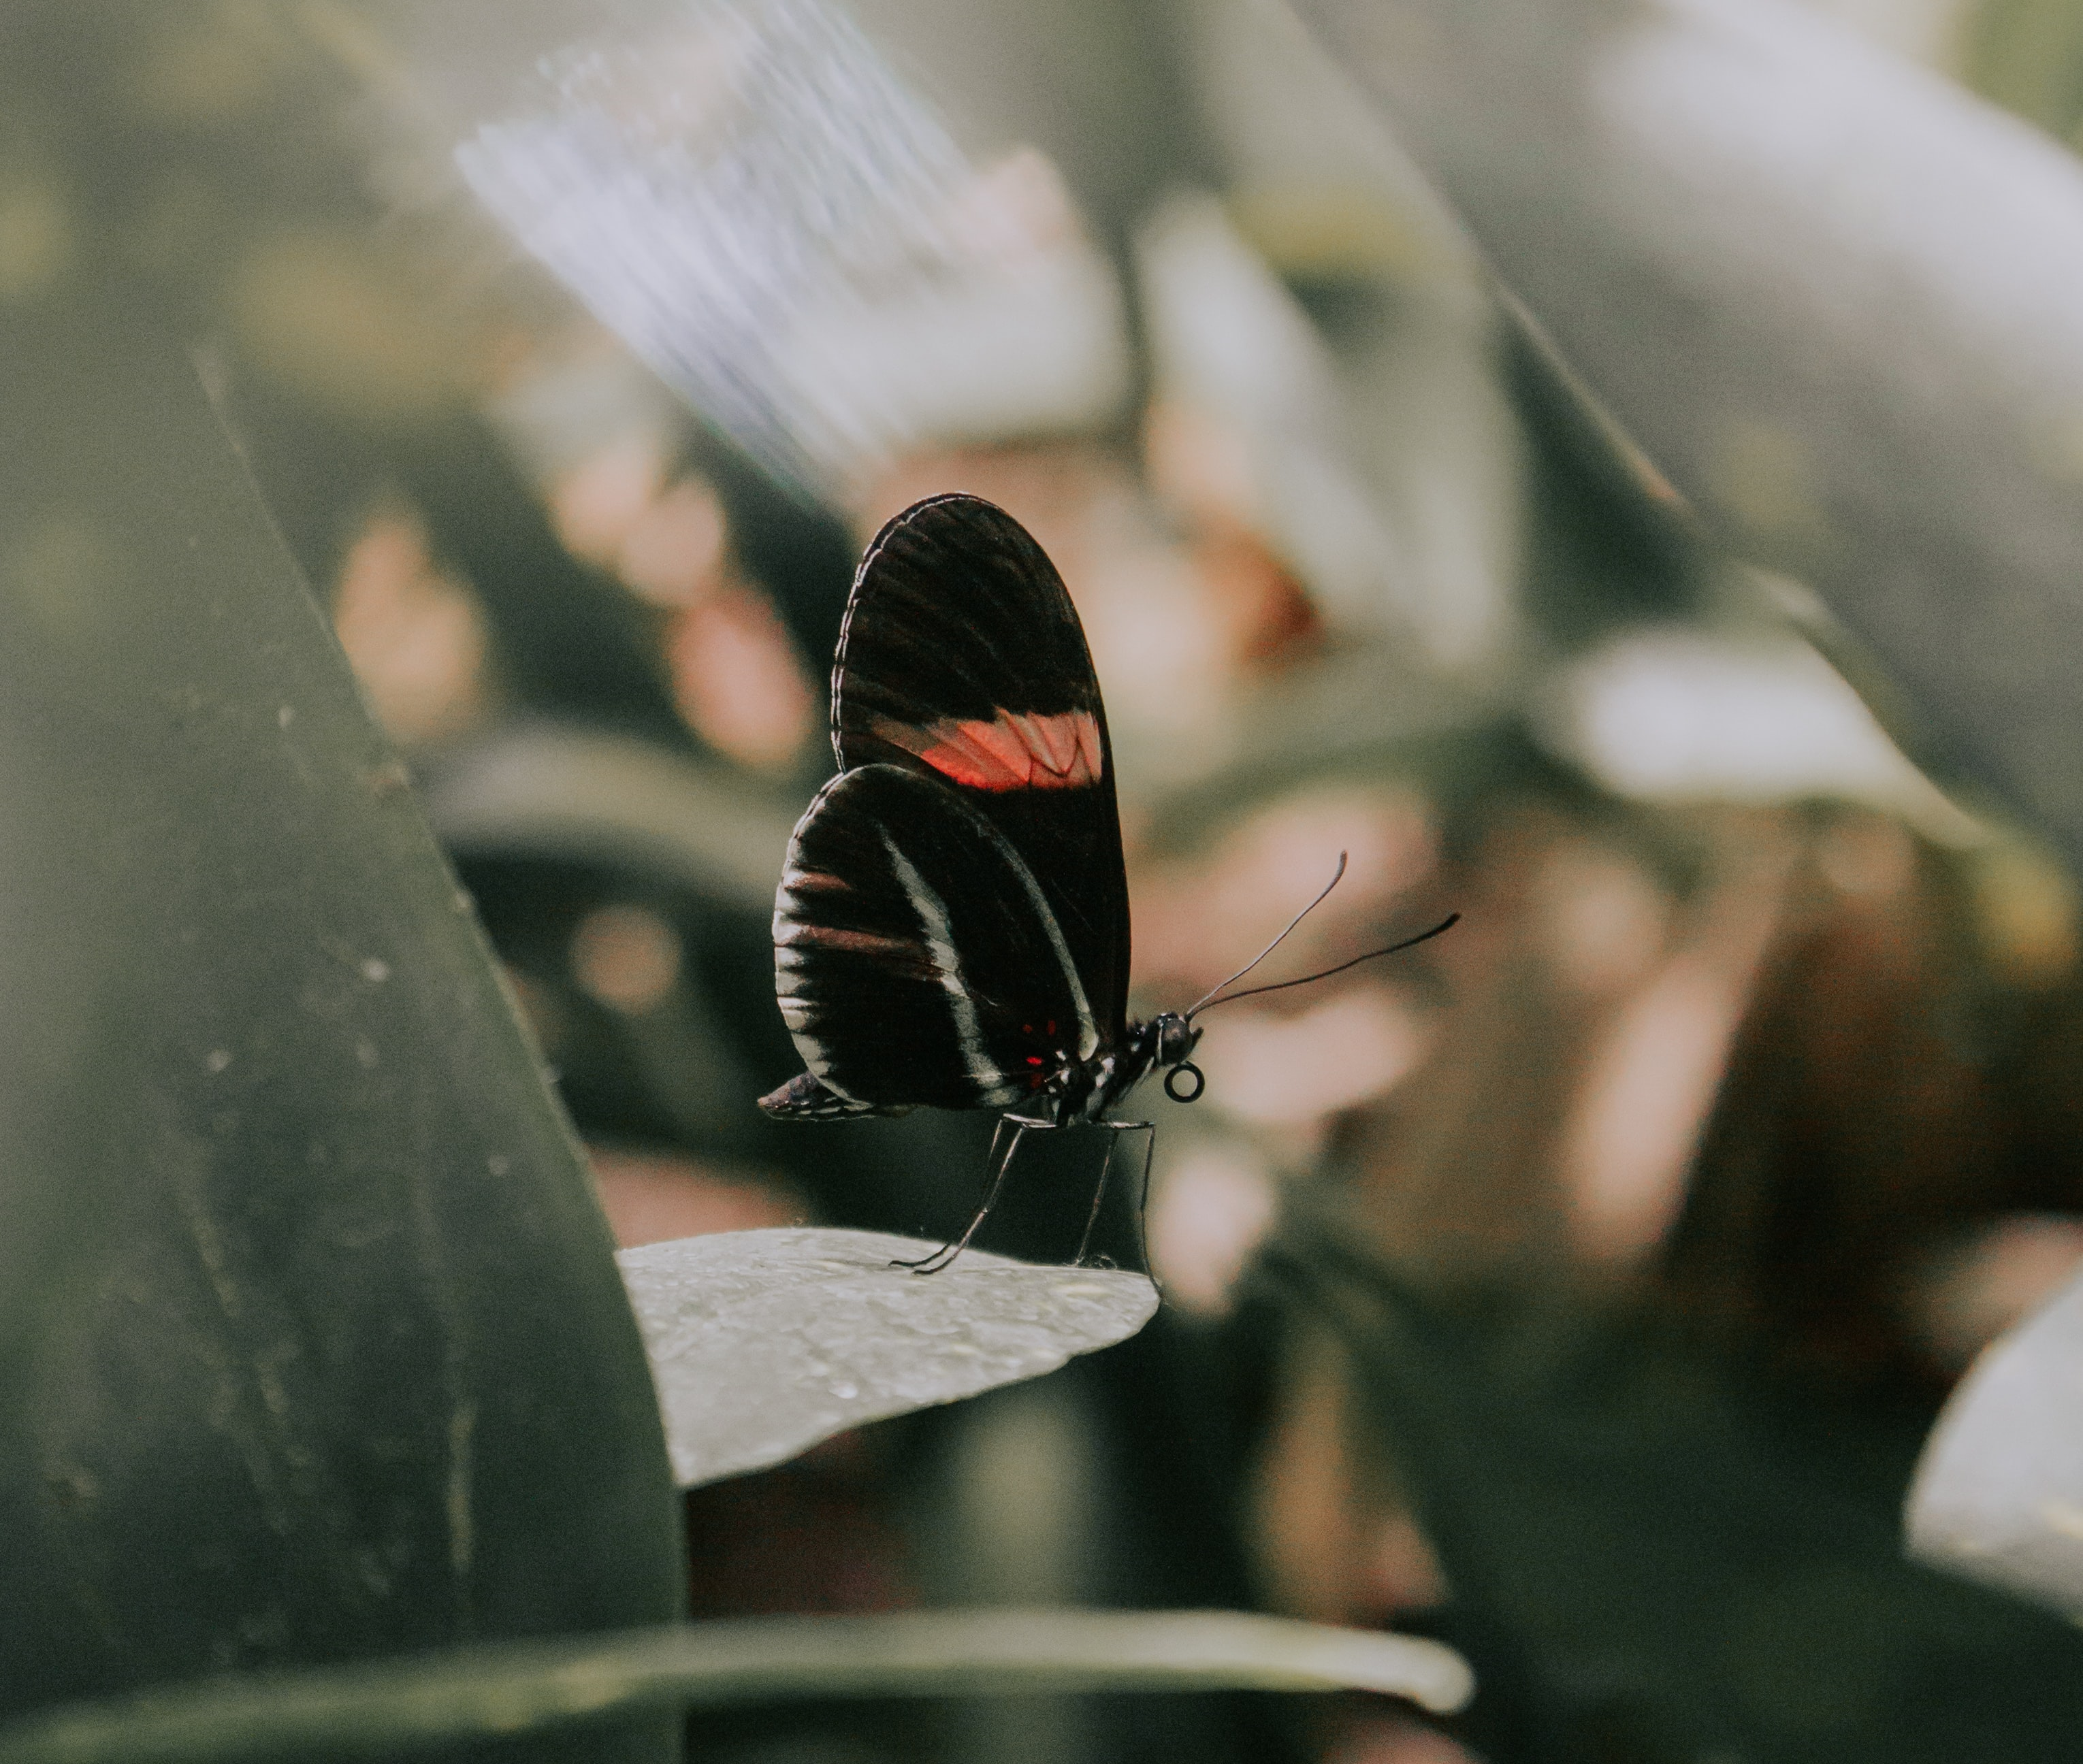 The Black Butterfly suffering stories